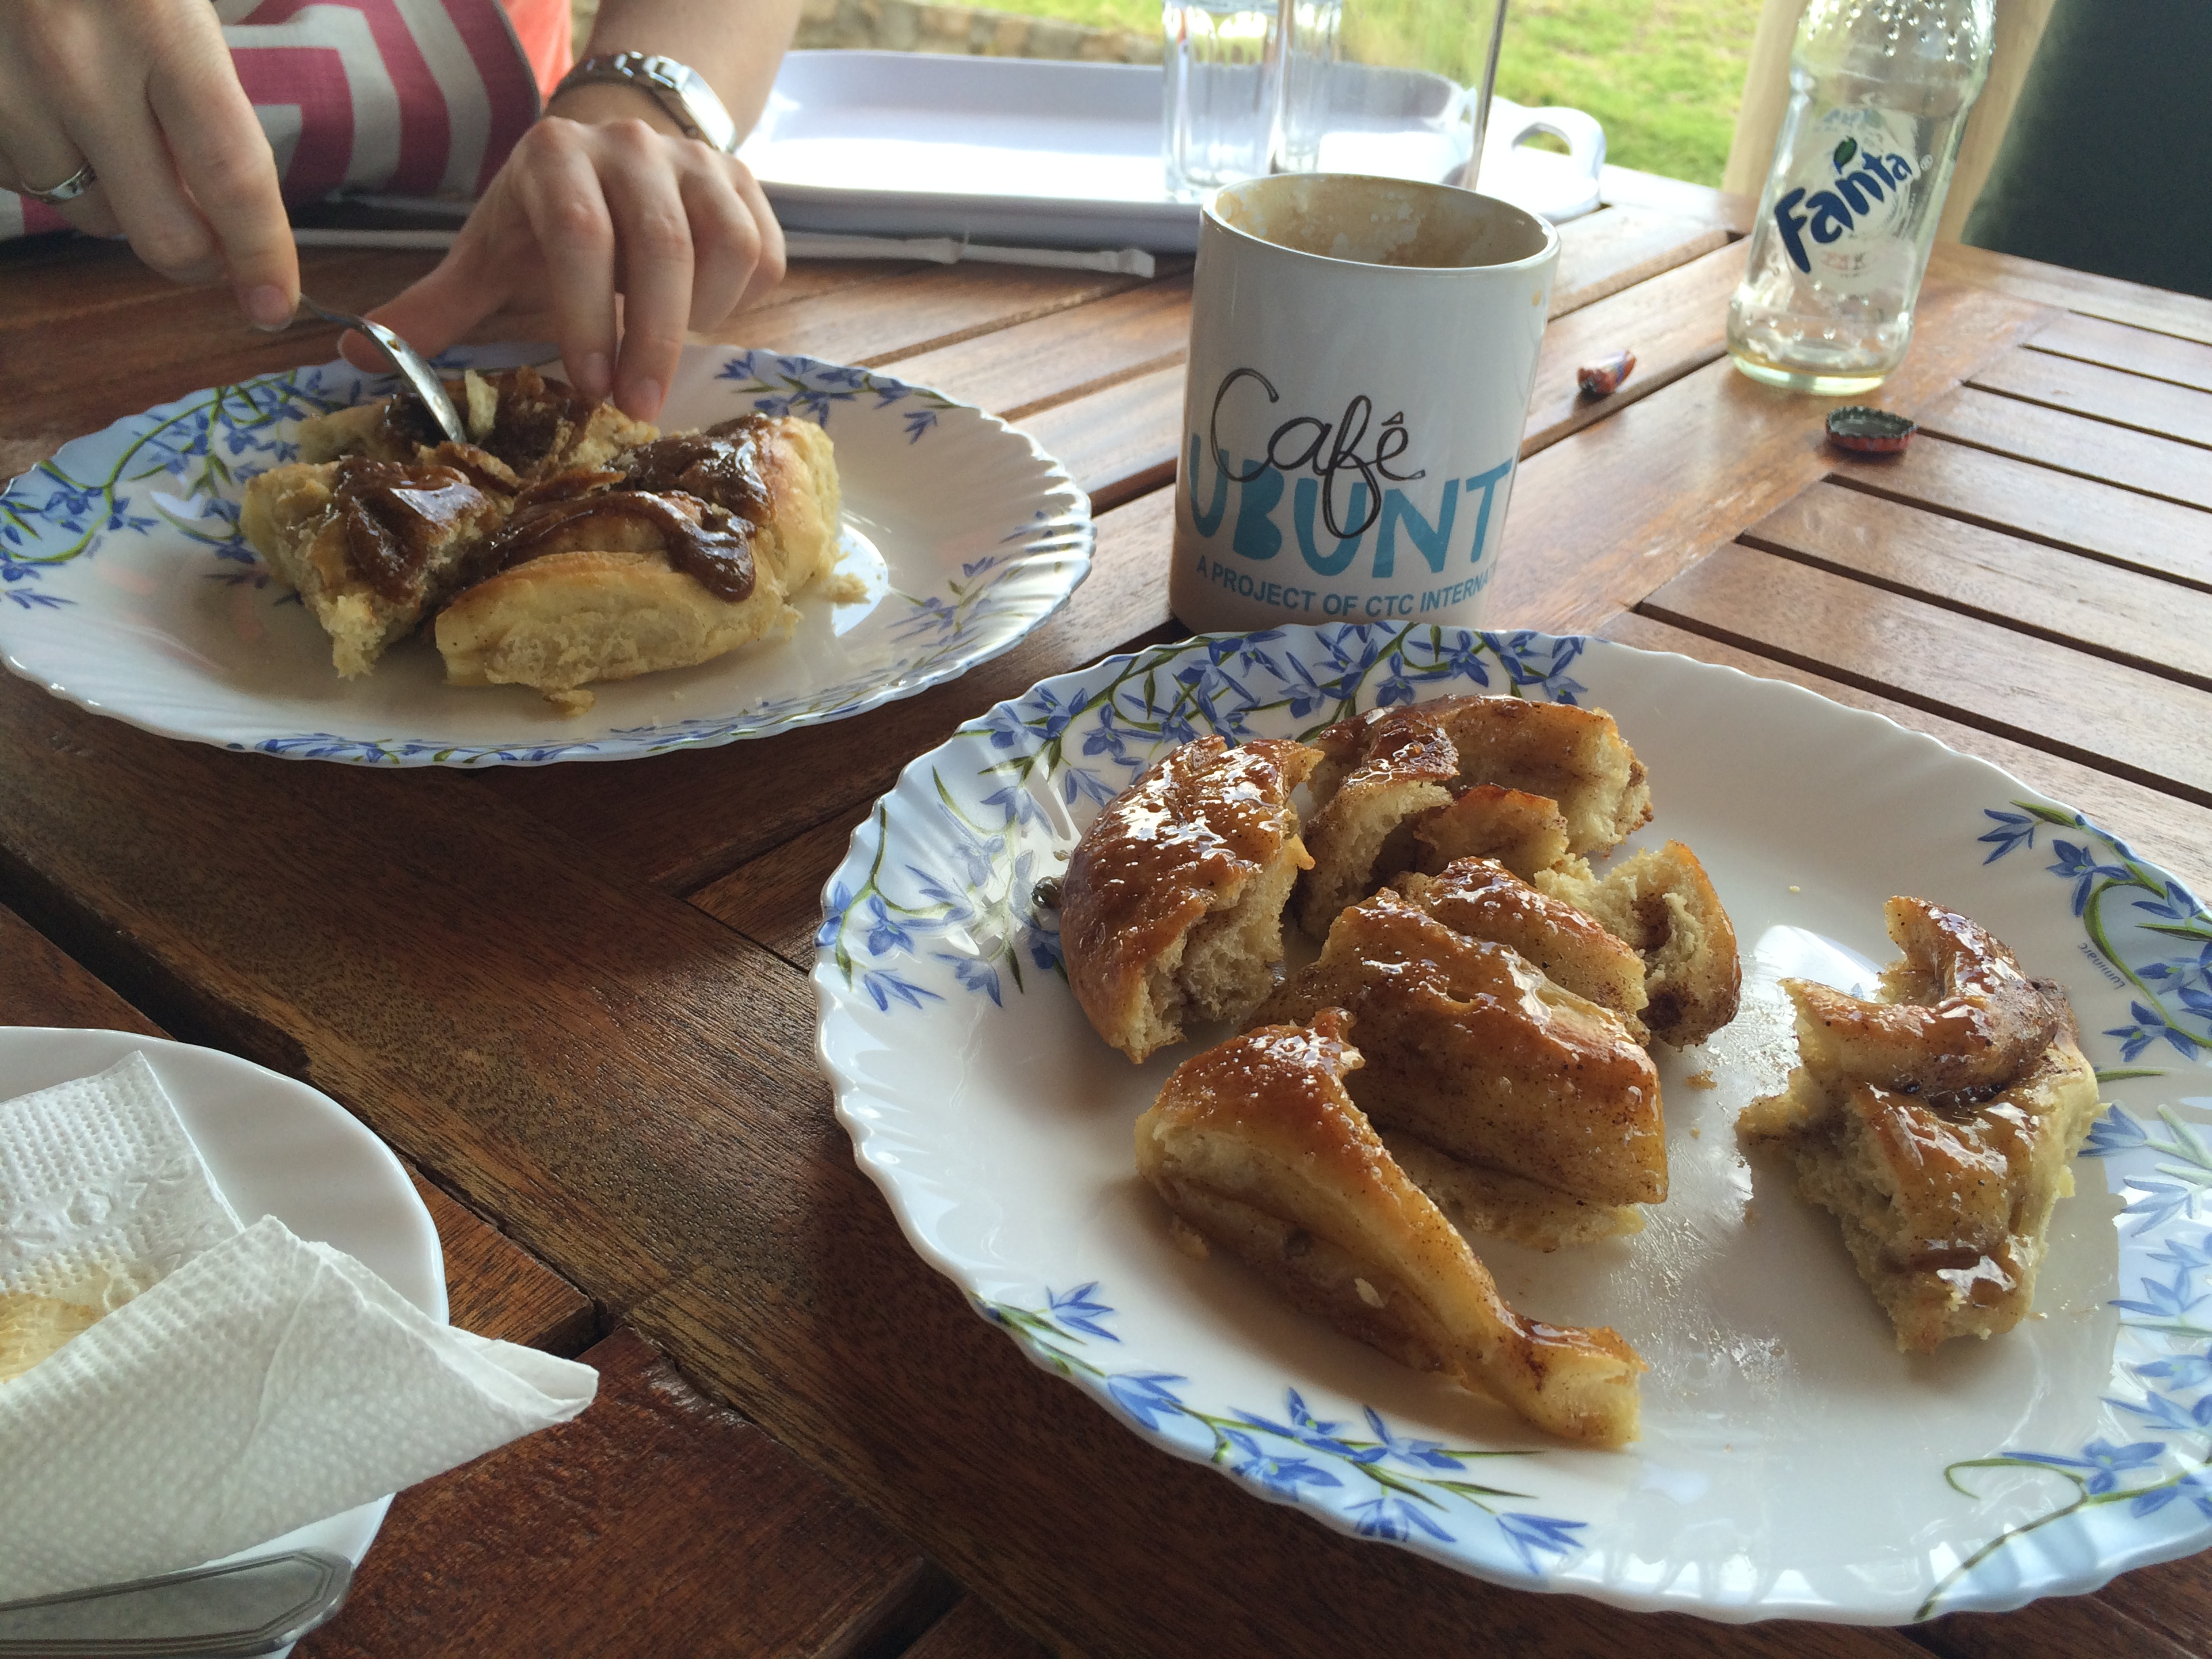 Sticky buns at Cafe Ubuntu in the Great Rift Valley, Kenya